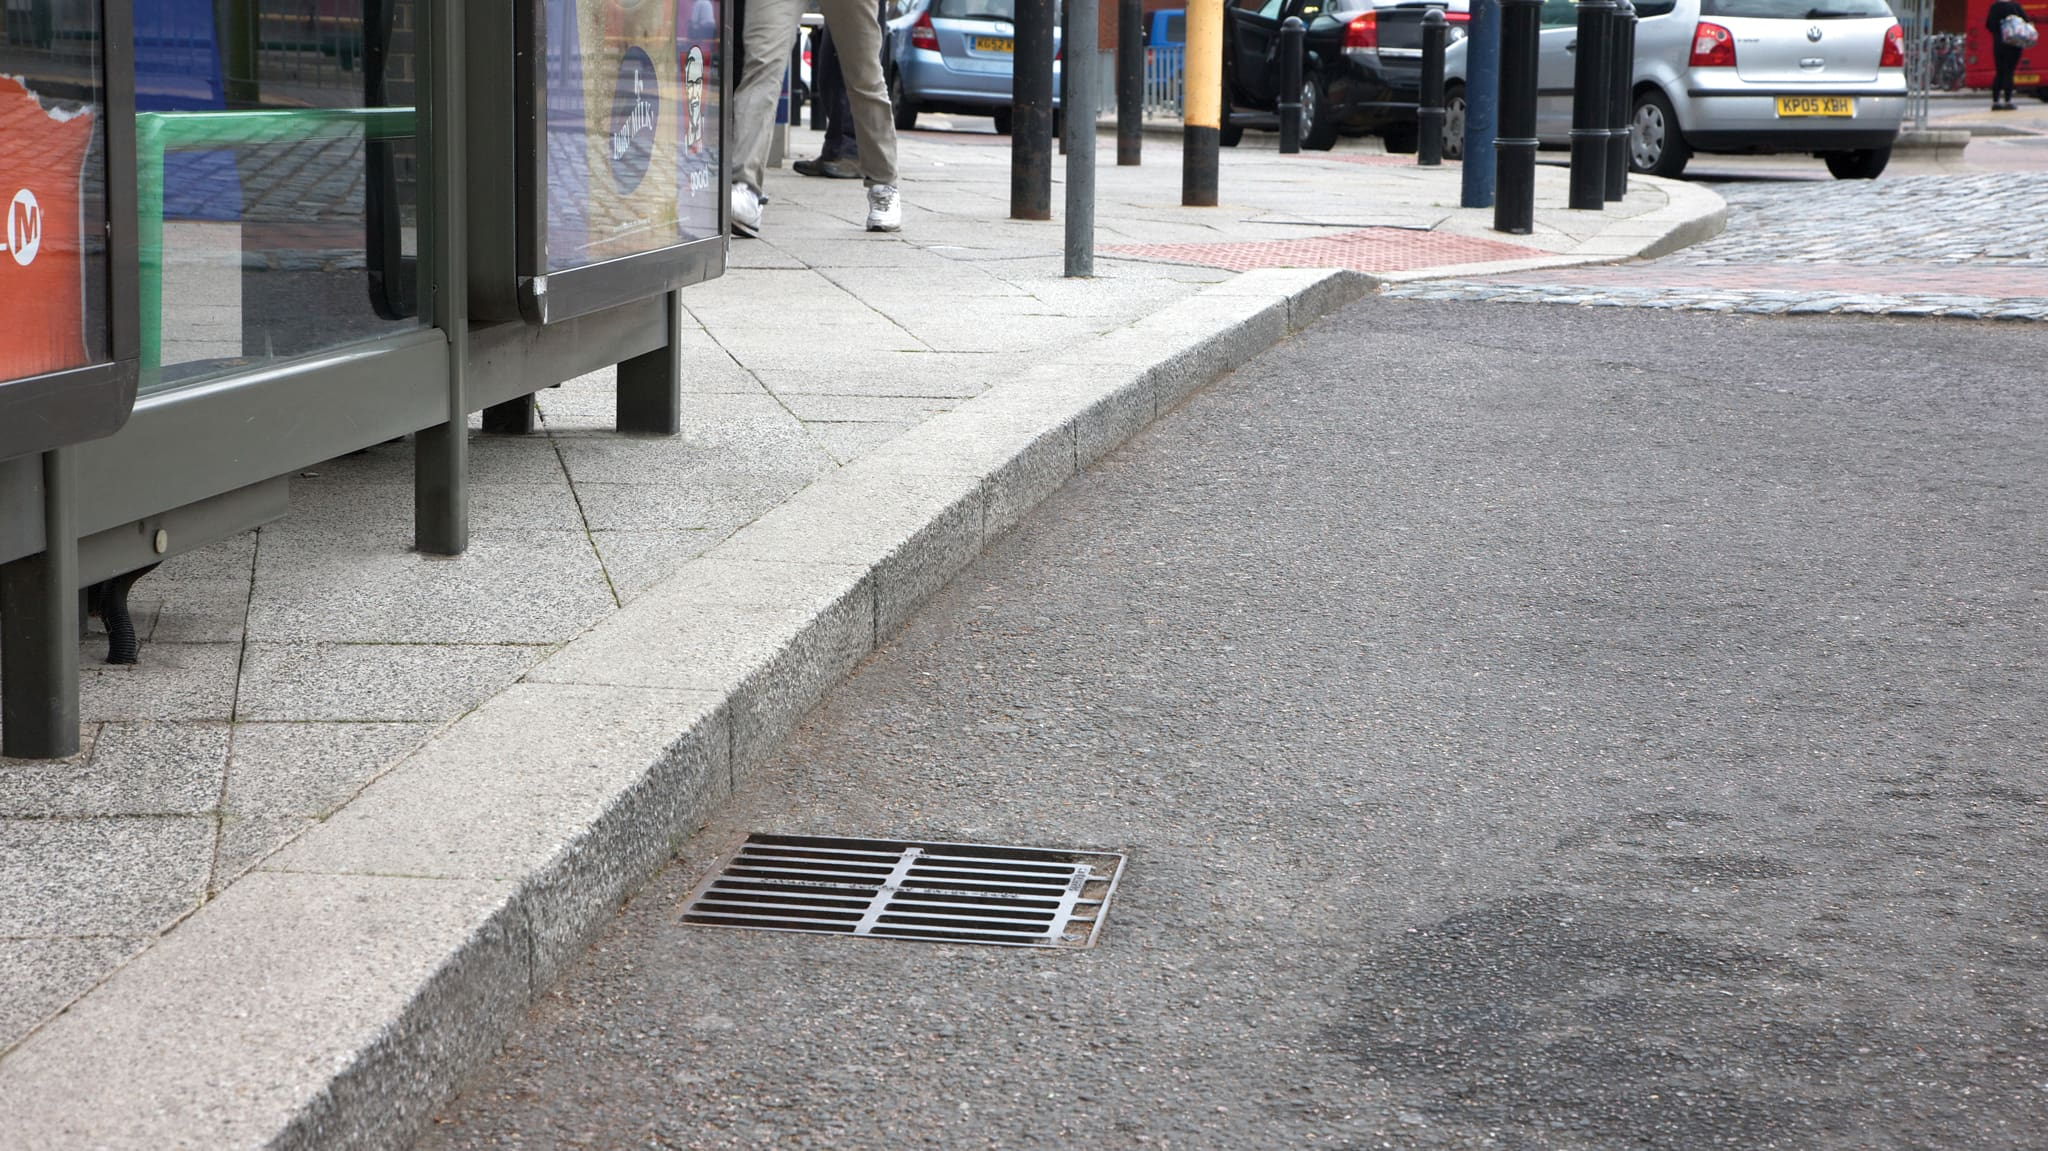 Grey conservation kerb next to a bus stop.